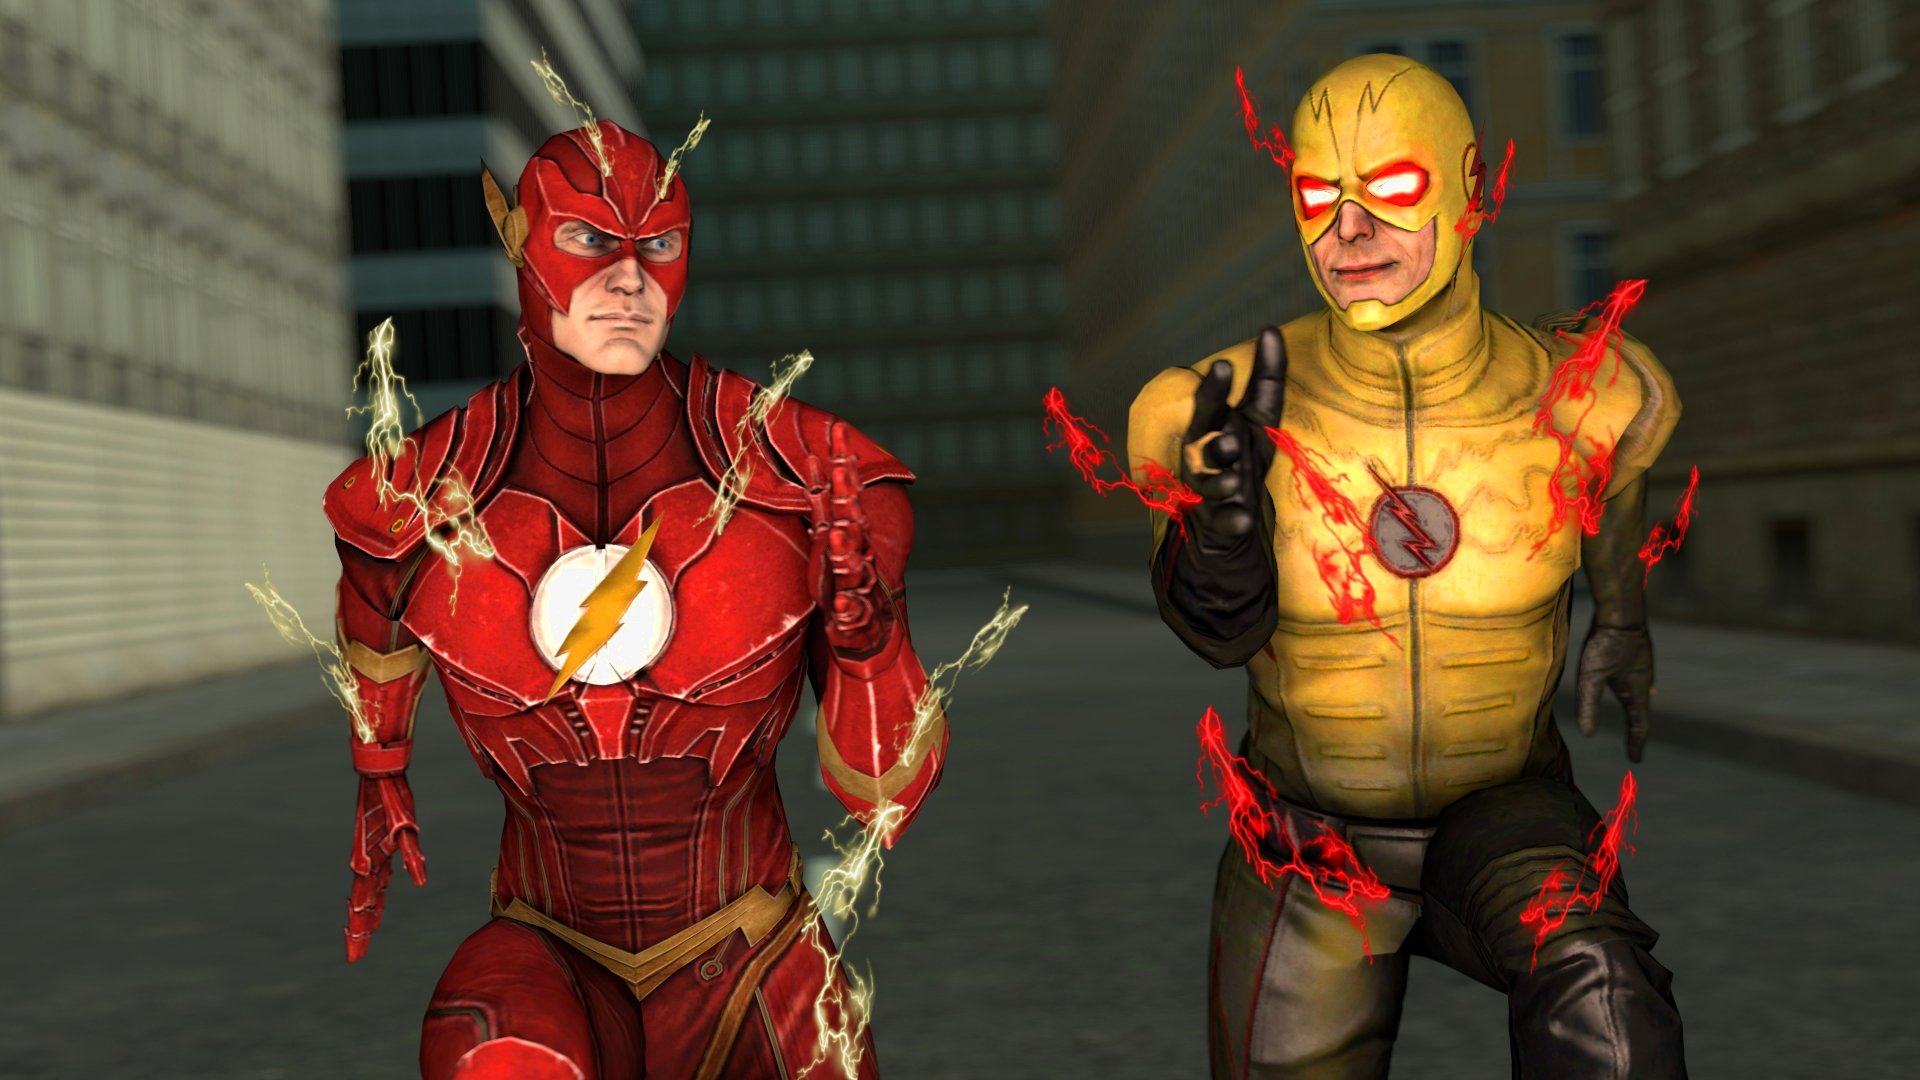 The Flash Vs Reverse Flash By Kongzillarex619 On Deviantart